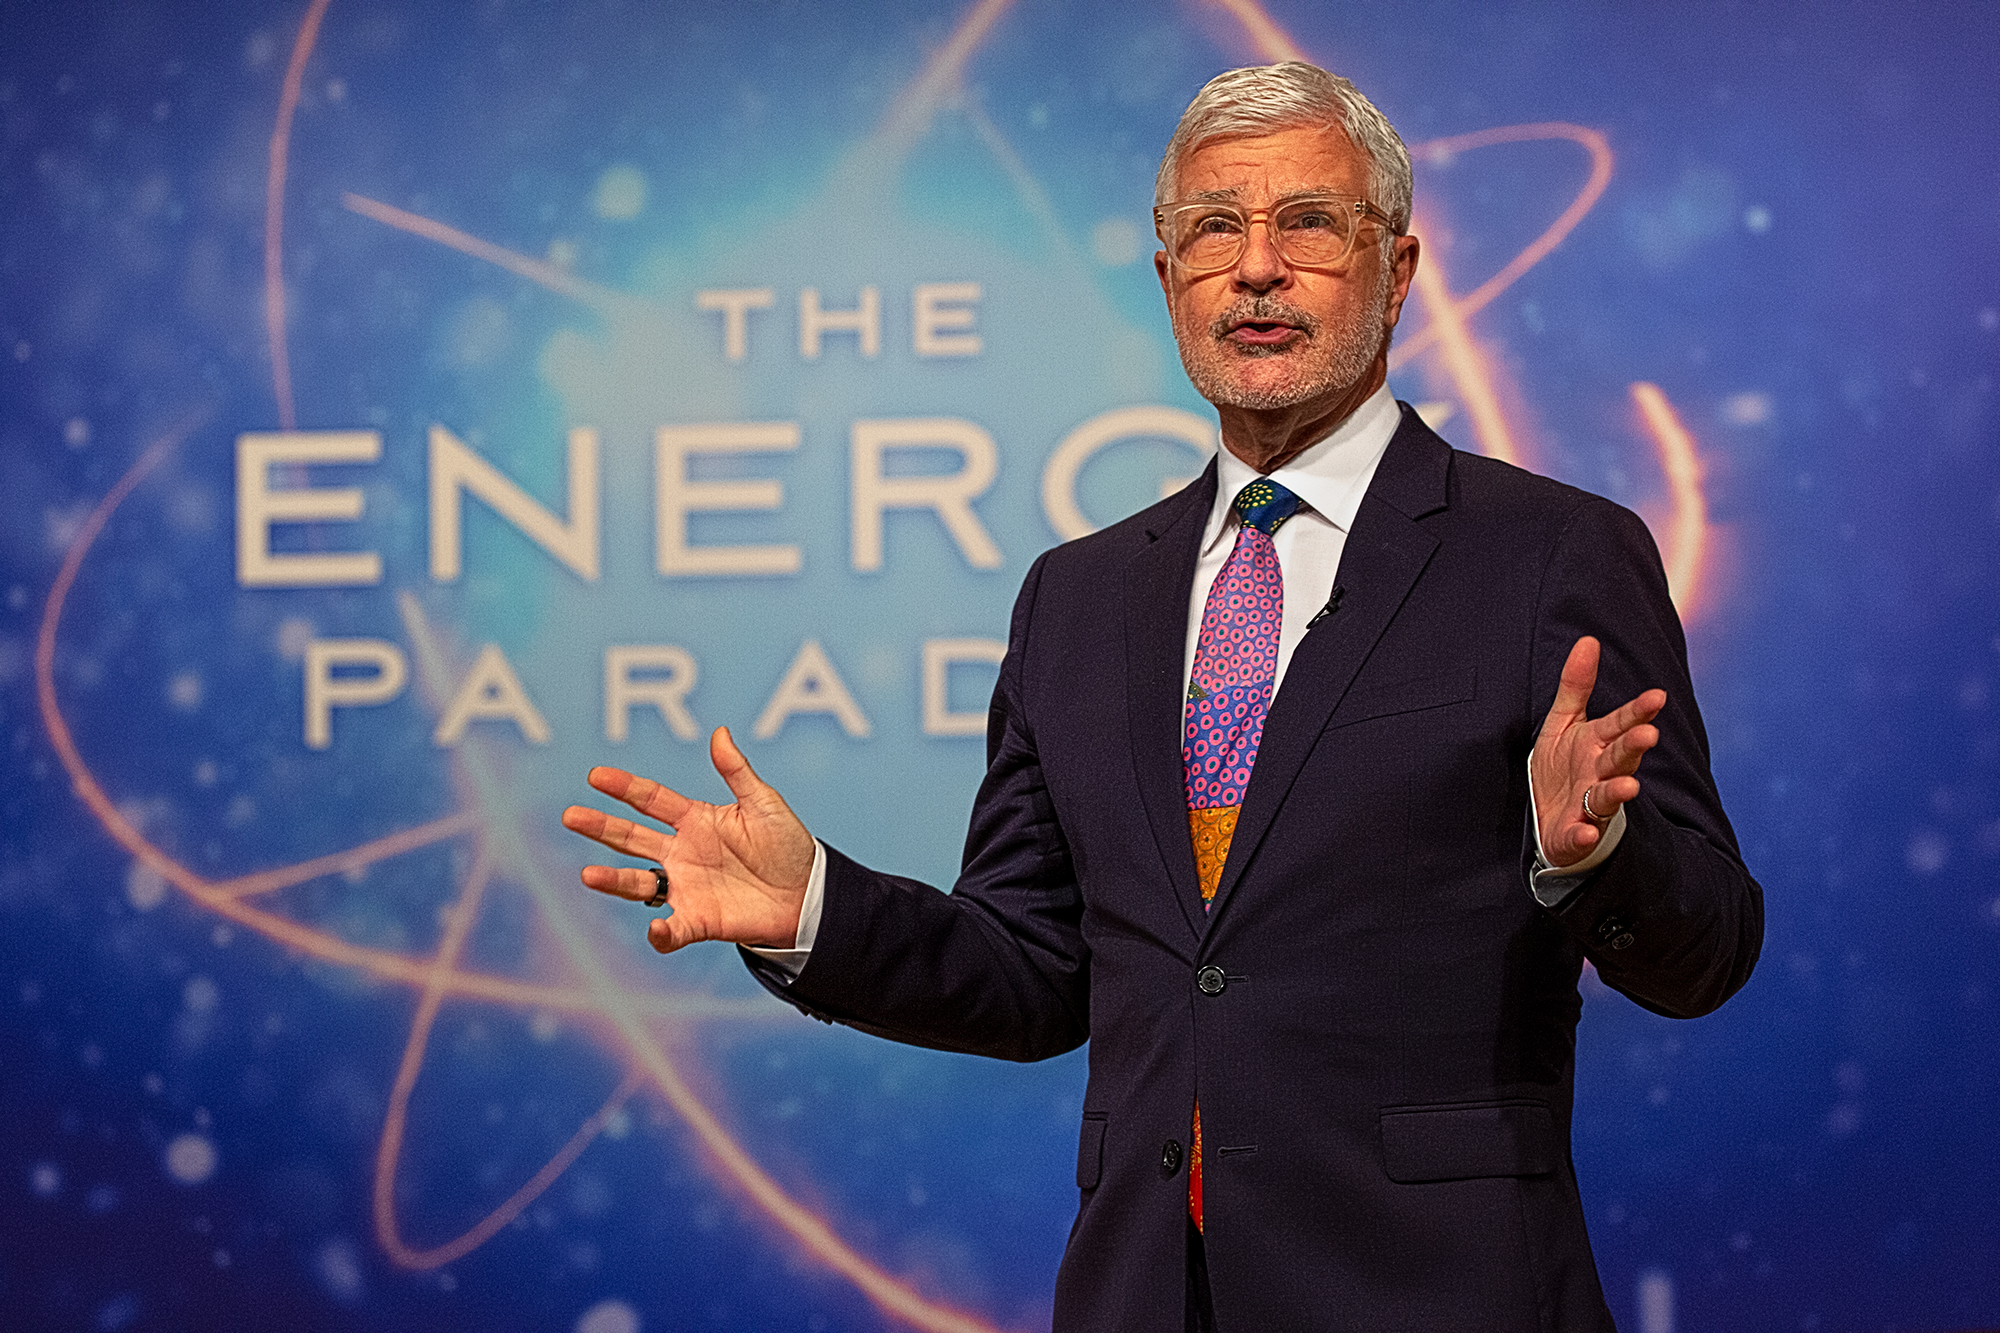 Energy Paradox with Steven Gundry, MD